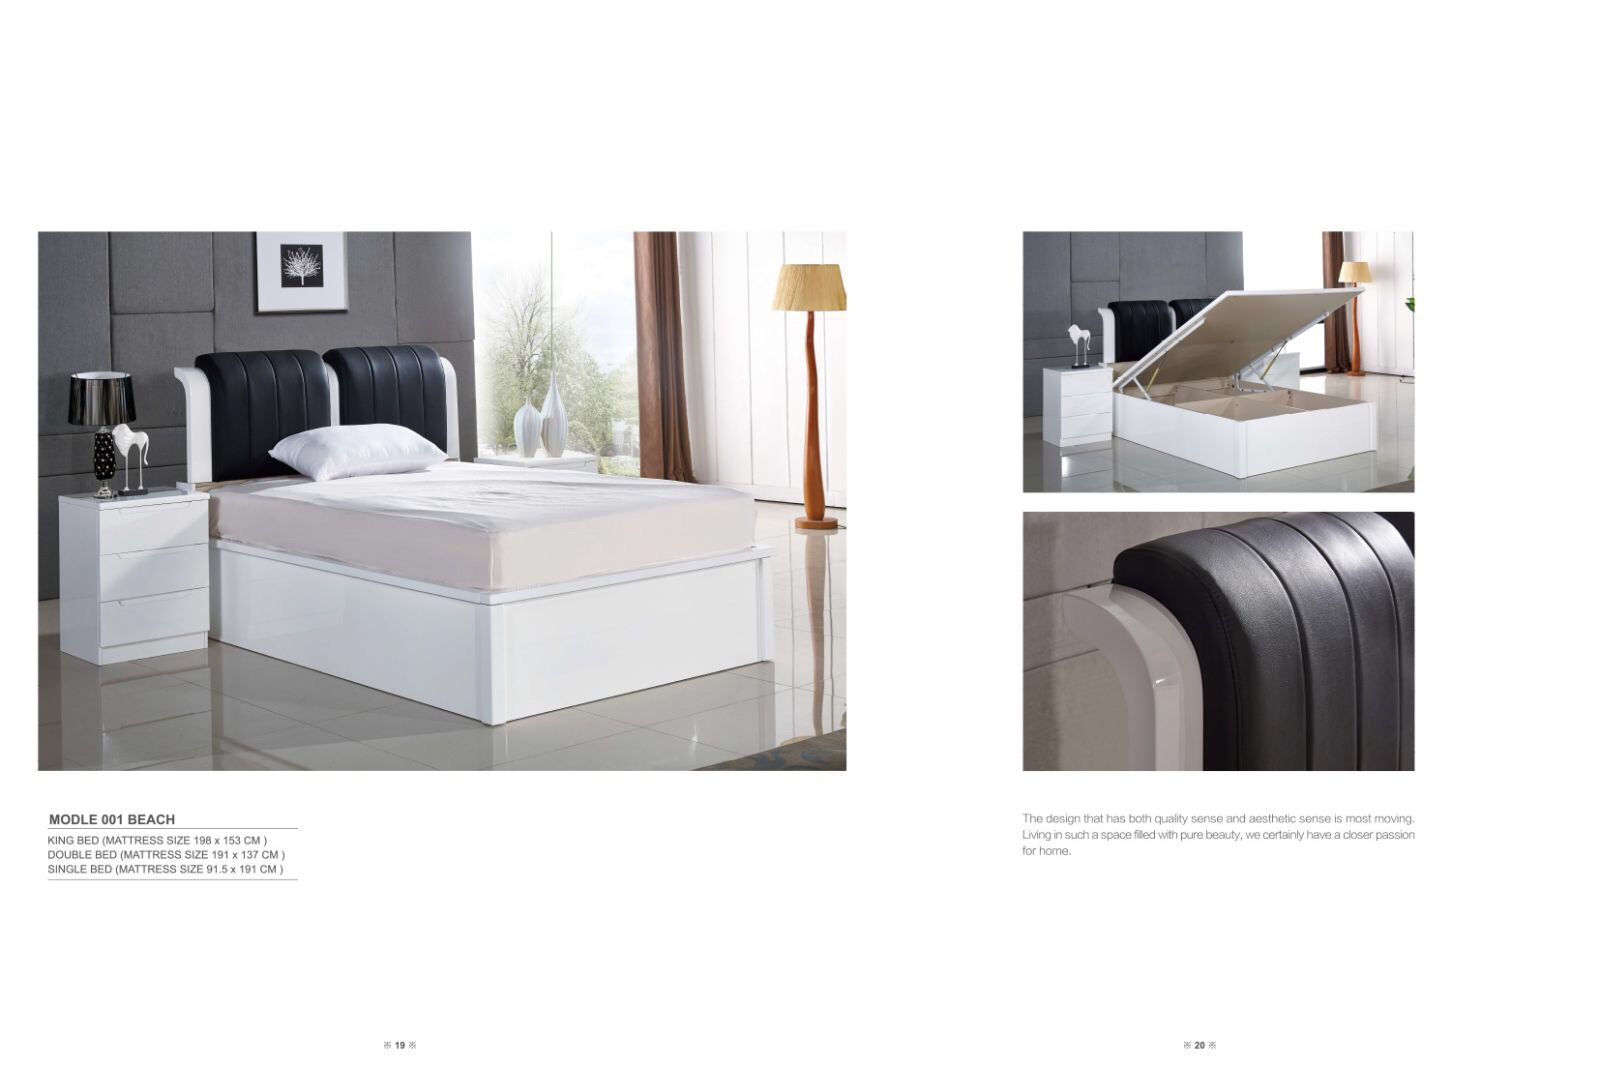 Rugby White with Black Leather Bed